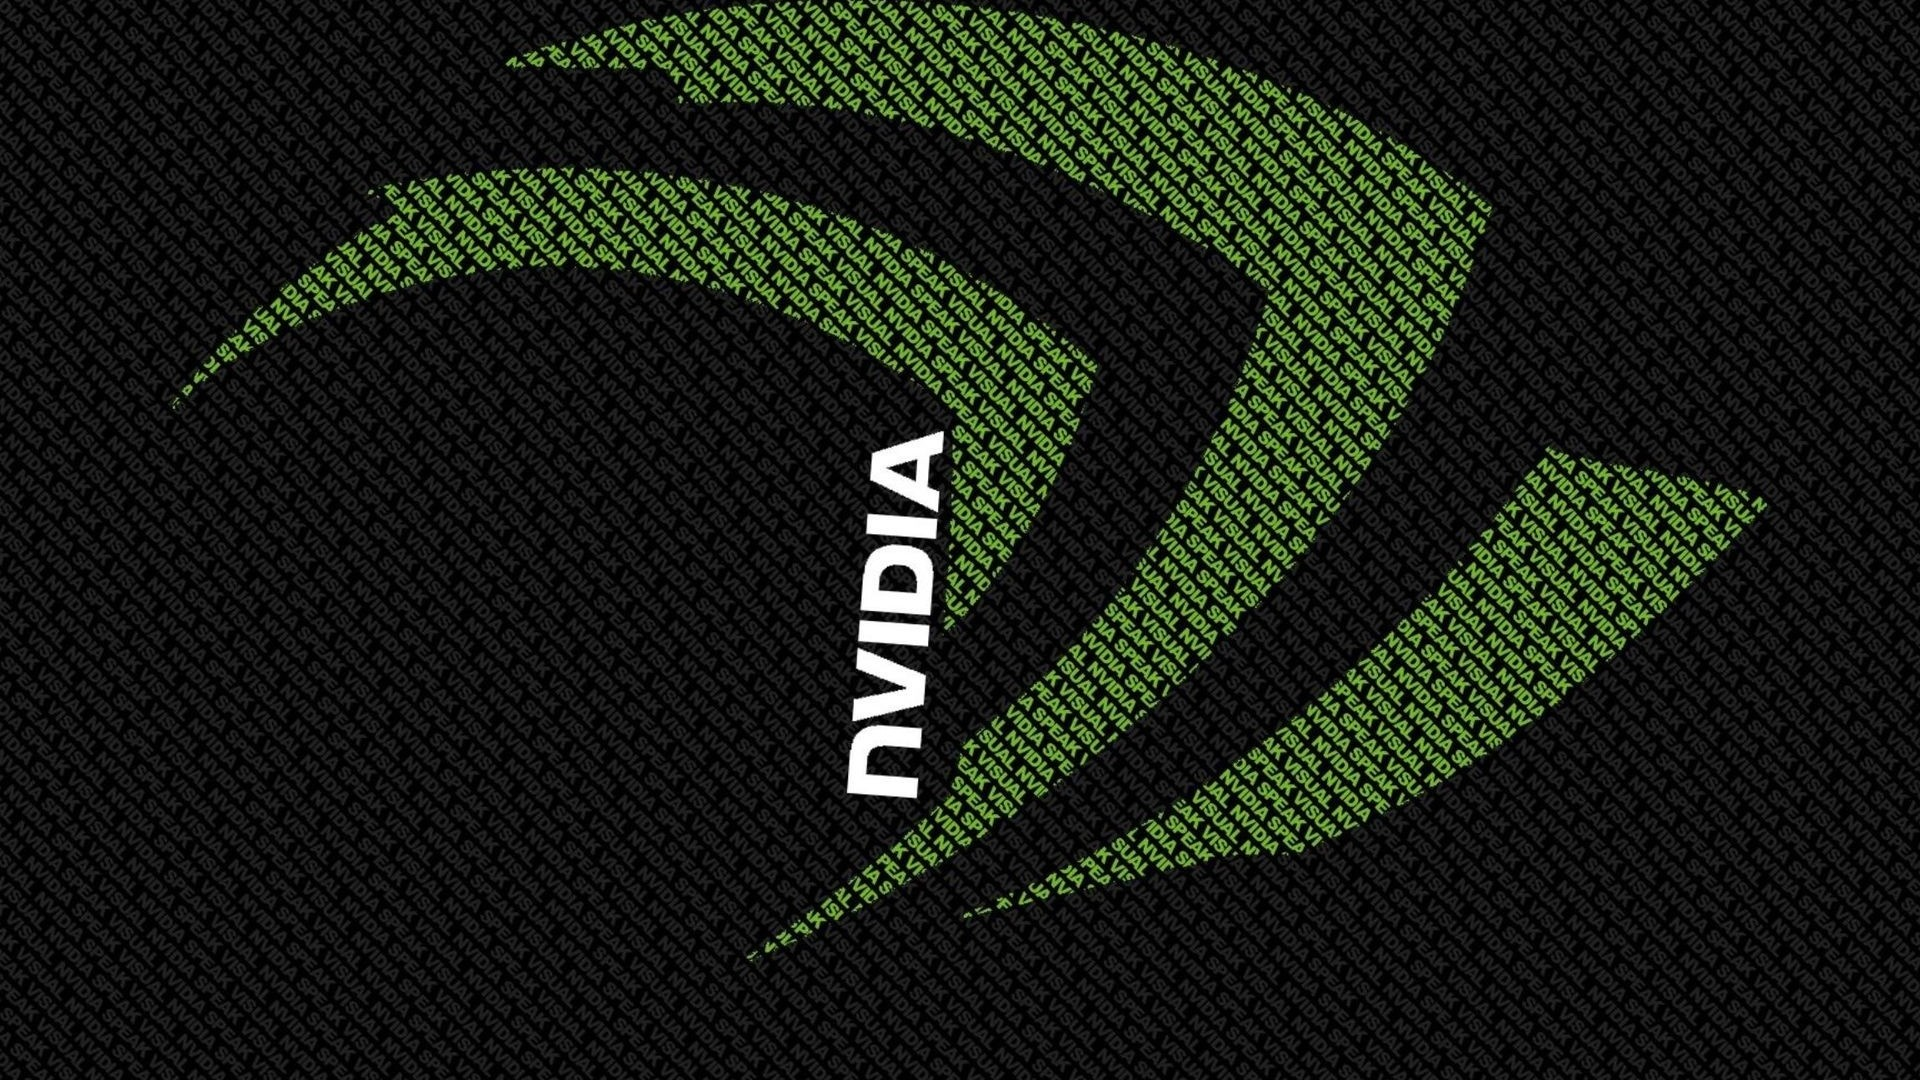 Nvidia Wallpapers 1080p 81 Images